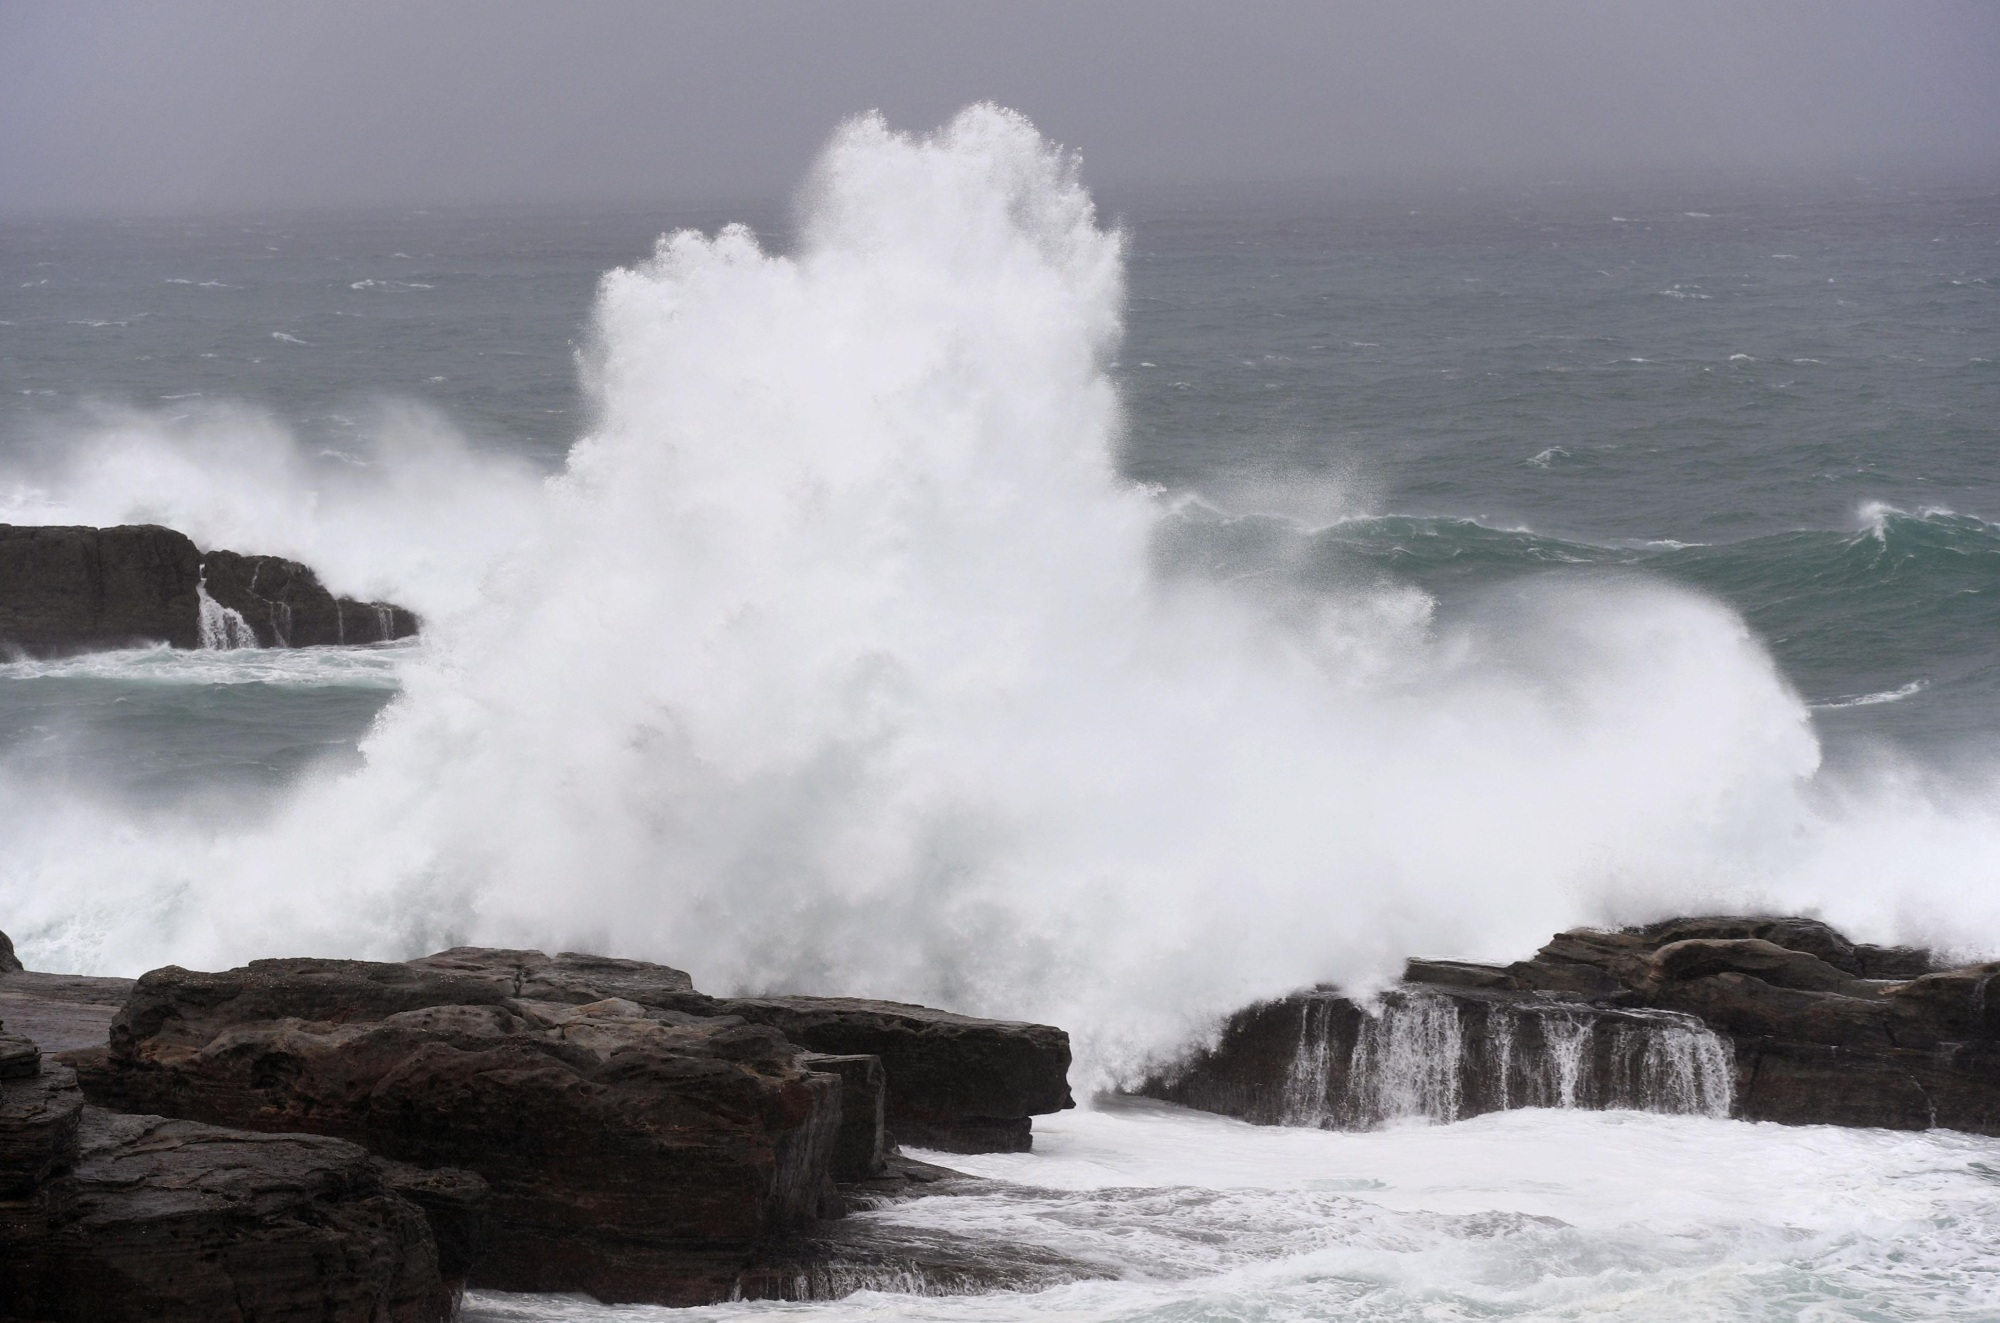 High waves batter the coast of Shirahama, Wakayama Prefecture, on Sunday as Typhoon Lan approached. Municipalities with remote islands were unable to start tallying votes as the powerful storm halted ferry services, preventing ballots from being delivered to the mainland. | KYODO